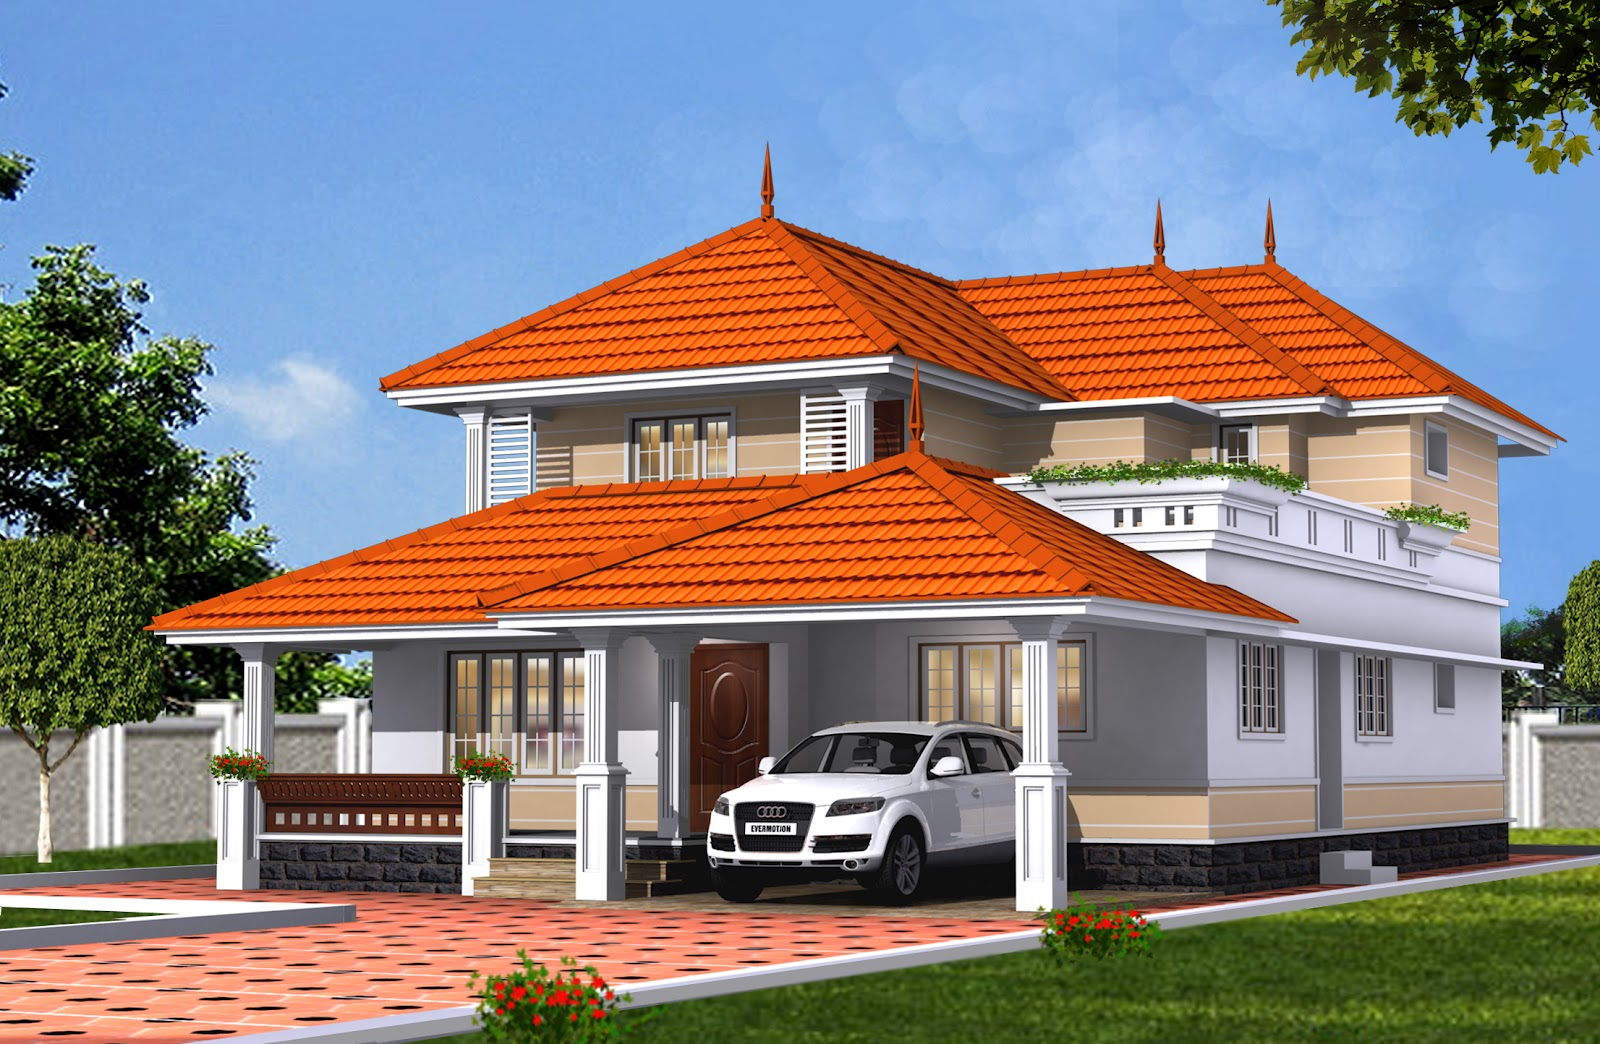 Friendsthiruvalla Posh House For Sale 2950 Sq Ft At